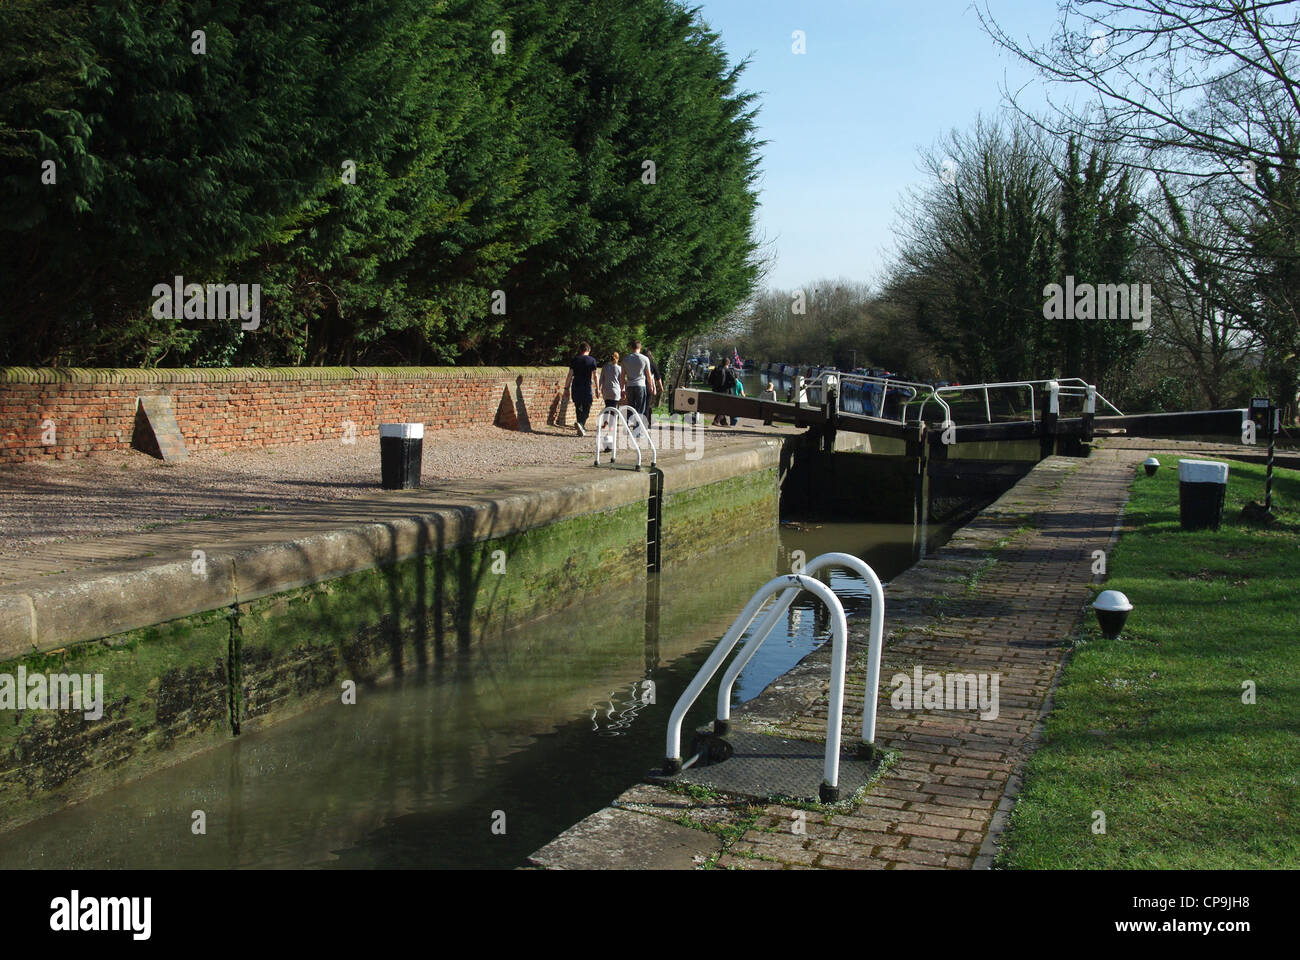 Enjoying an afternoon stroll by the canal at Cosgrove - Stock Image